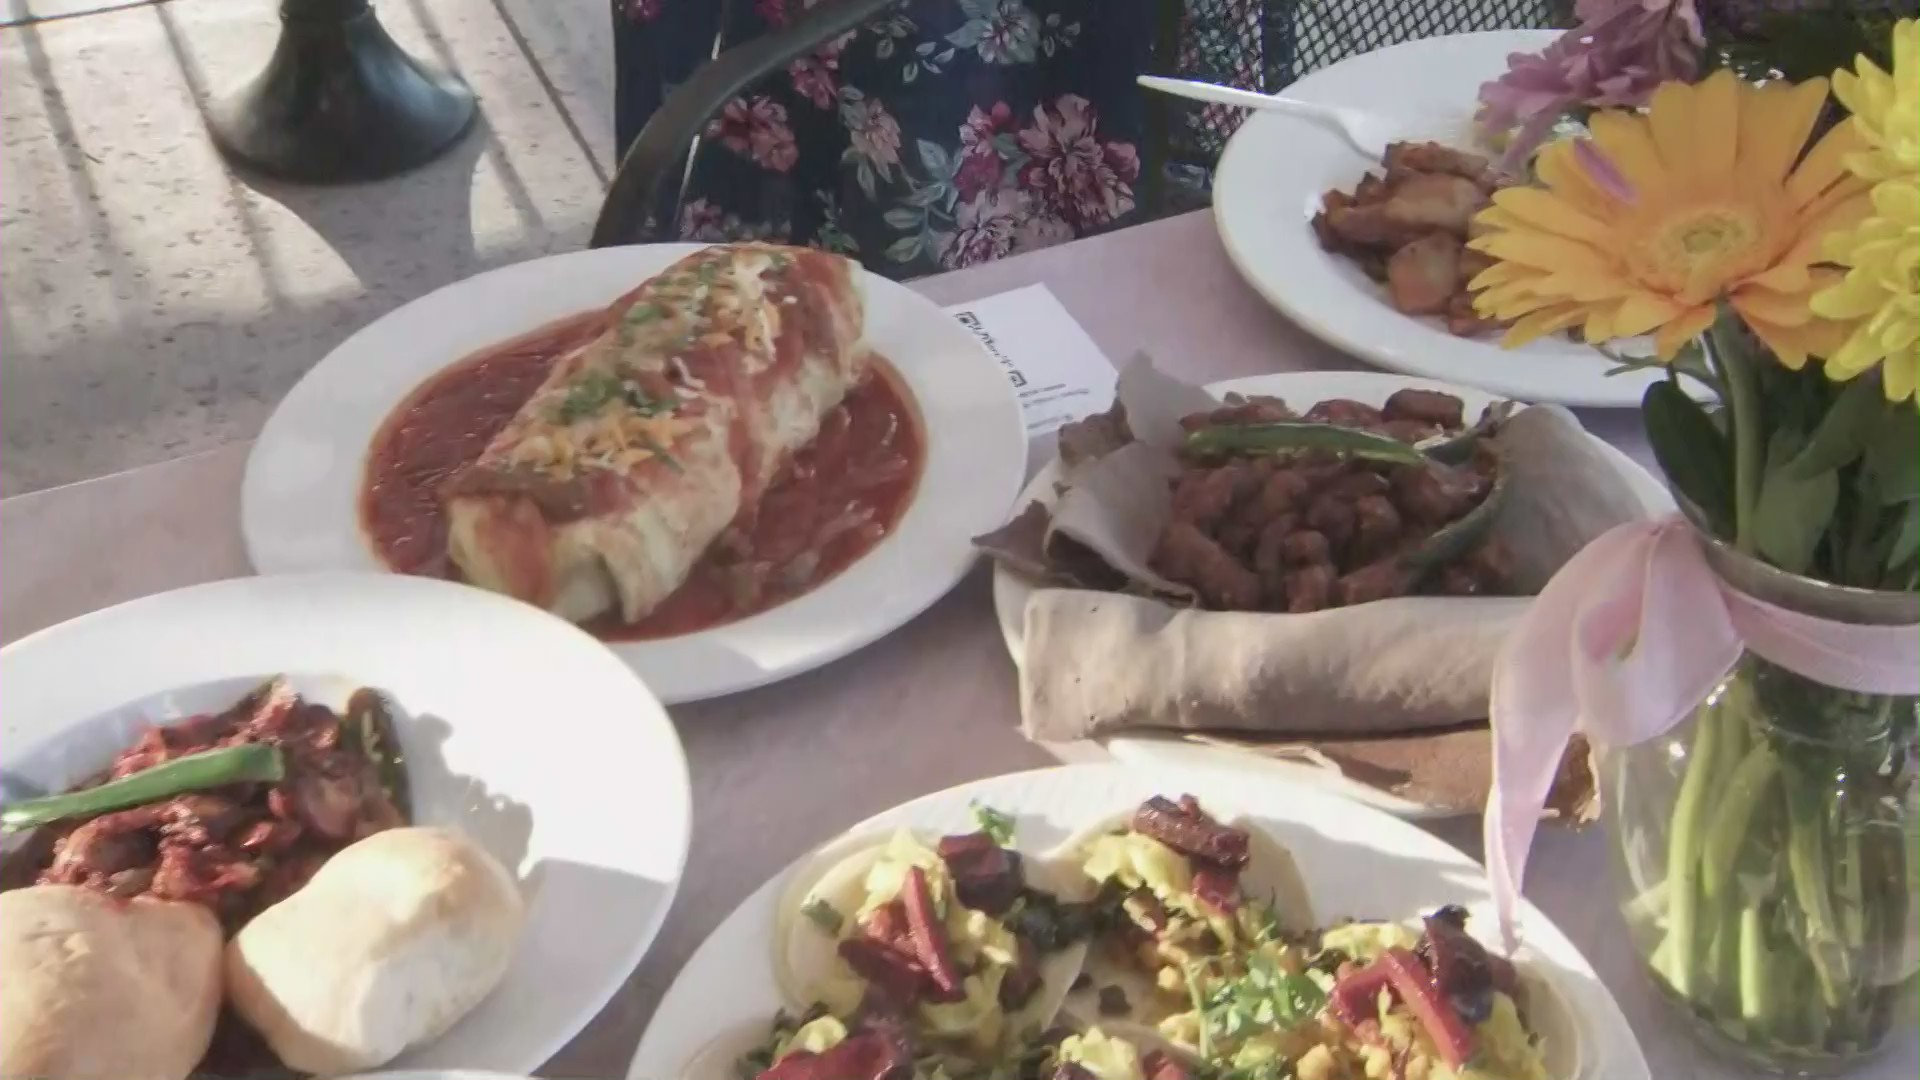 Ranch Side Cafe in Lake View Terrace displays its menu offerings on Aug. 9, 2020. (KTLA)